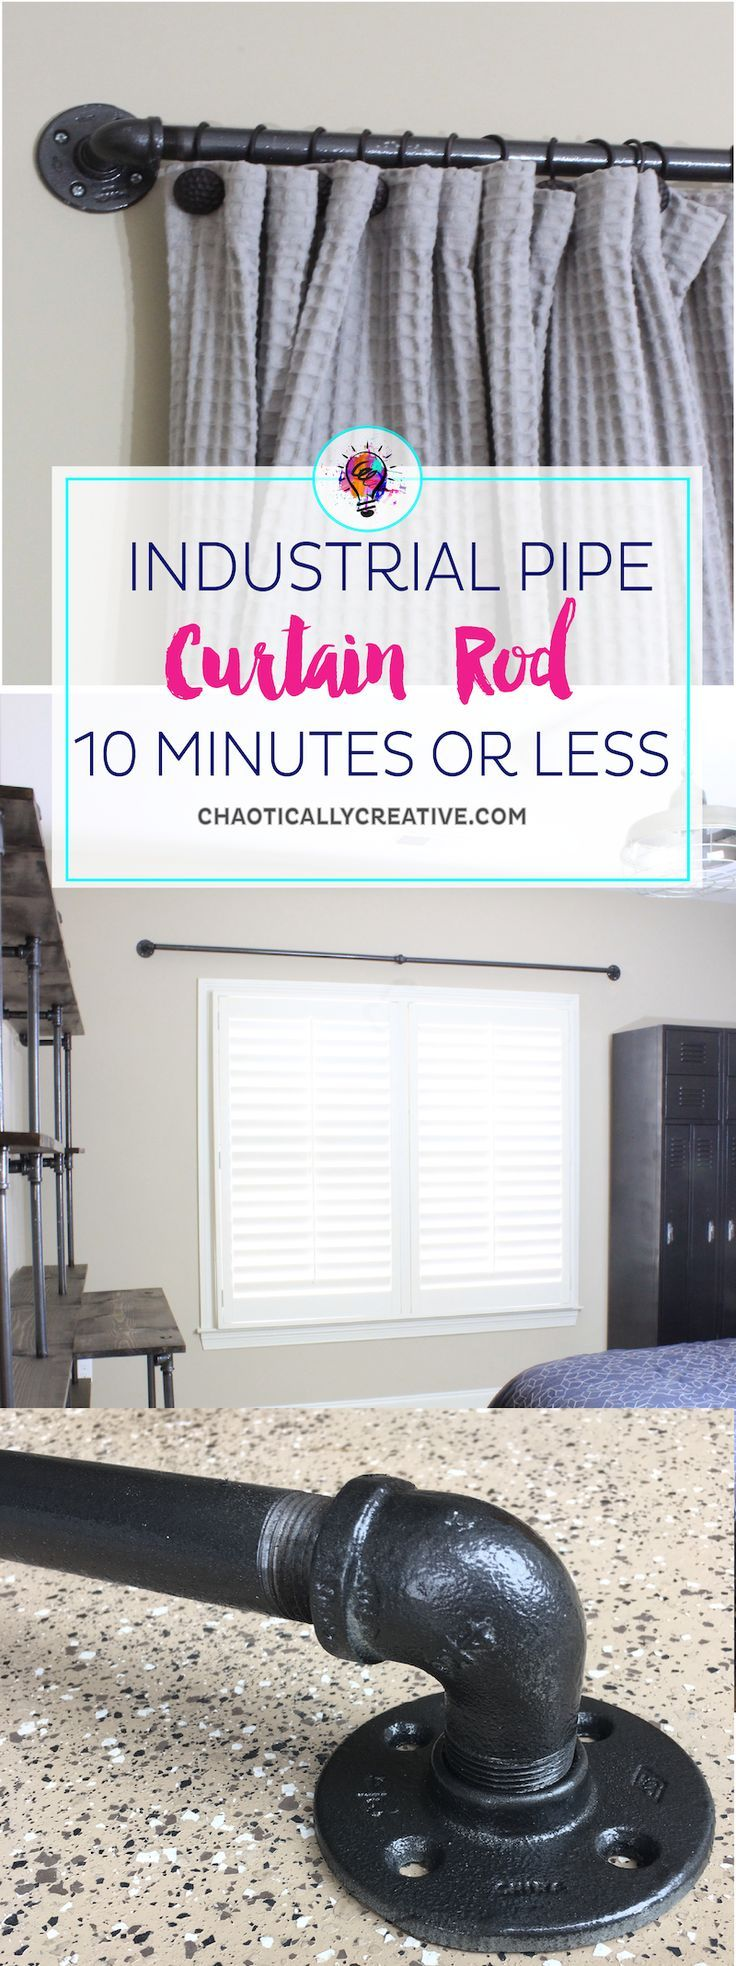 large curtain rods 2 inch diameter need really large curtain rods try these easy diy curtain rods made from gas pipes and fittings gas pipes are so easy to use affordable home projects pinterest diy